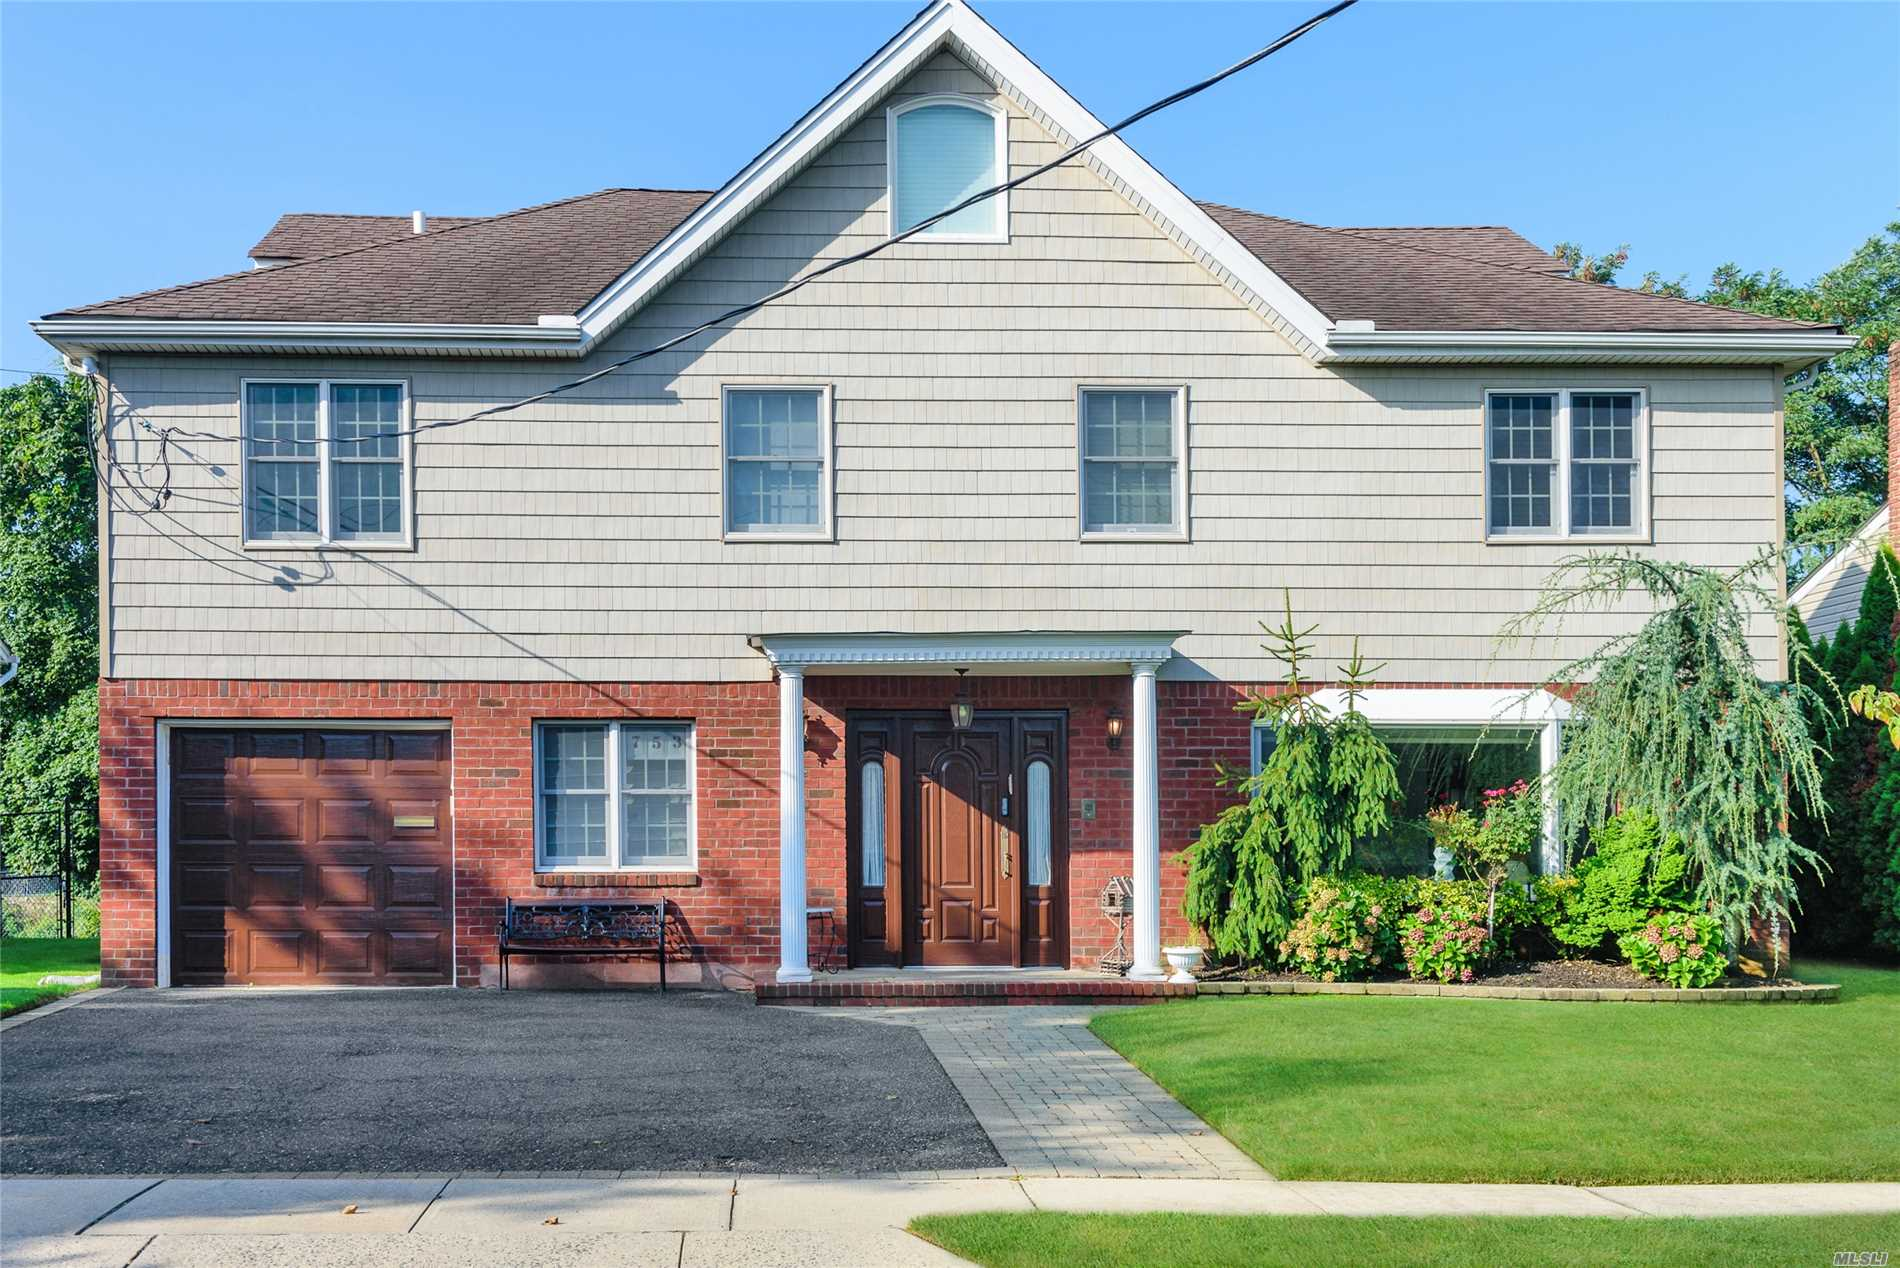 Full House Renovation.. Everything Is New. Radiant Heat On The Entire 1st Floor Other Than The Lr & Dr, Which Has Hardwood Floors, Amazing Kosher Kitchen/Granite, 10' Island, 3 Sinks, 3 Dishwashers, Double Wolf Oven, Warming Draw, 5 Gas Cooktop Range, Extra Frig And Freezer Draws, Microwave..8 Large Bedrooms, Walk-In-Closets, Security And Lighting System.....Waterfront With No Sandy Damage